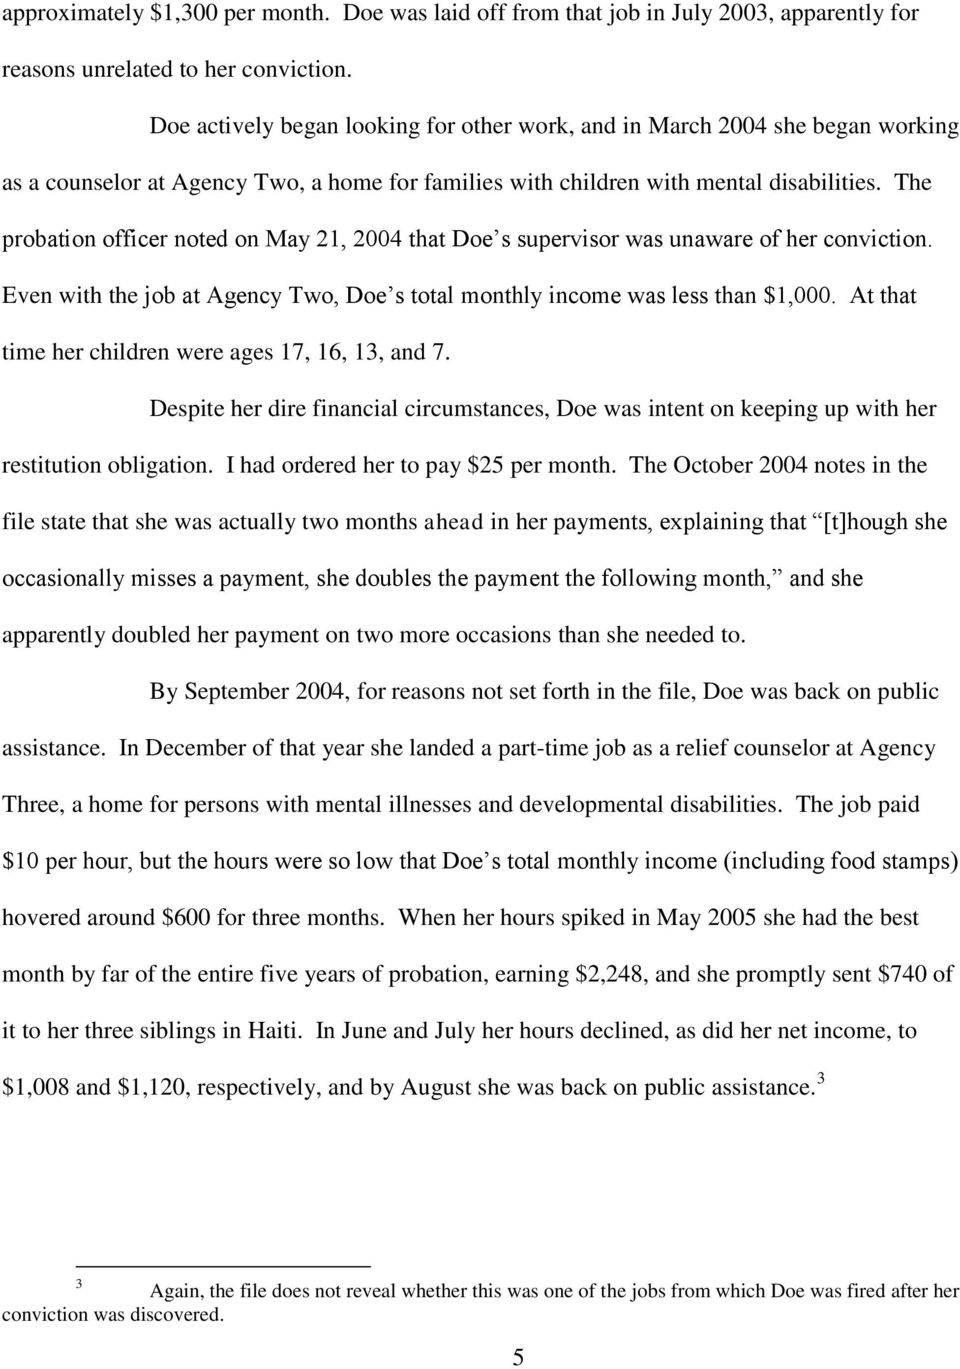 The probation officer noted on May 21, 2004 that Doe s supervisor was unaware of her conviction. Even with the job at Agency Two, Doe s total monthly income was less than $1,000.